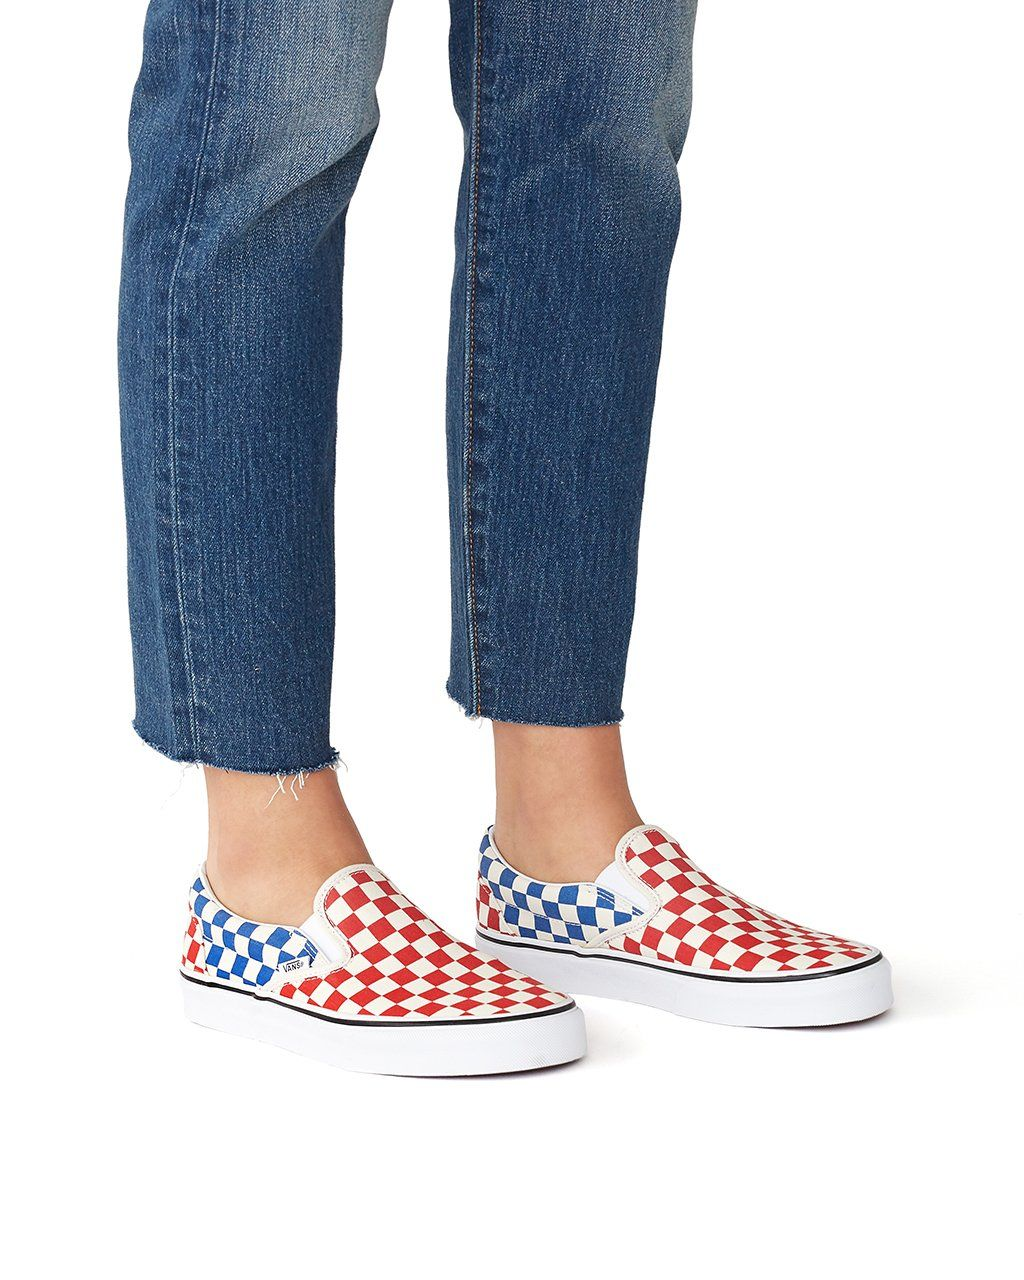 classic slip-on - red and blue check by vans - shoes - ban.do ... 917c7fc32